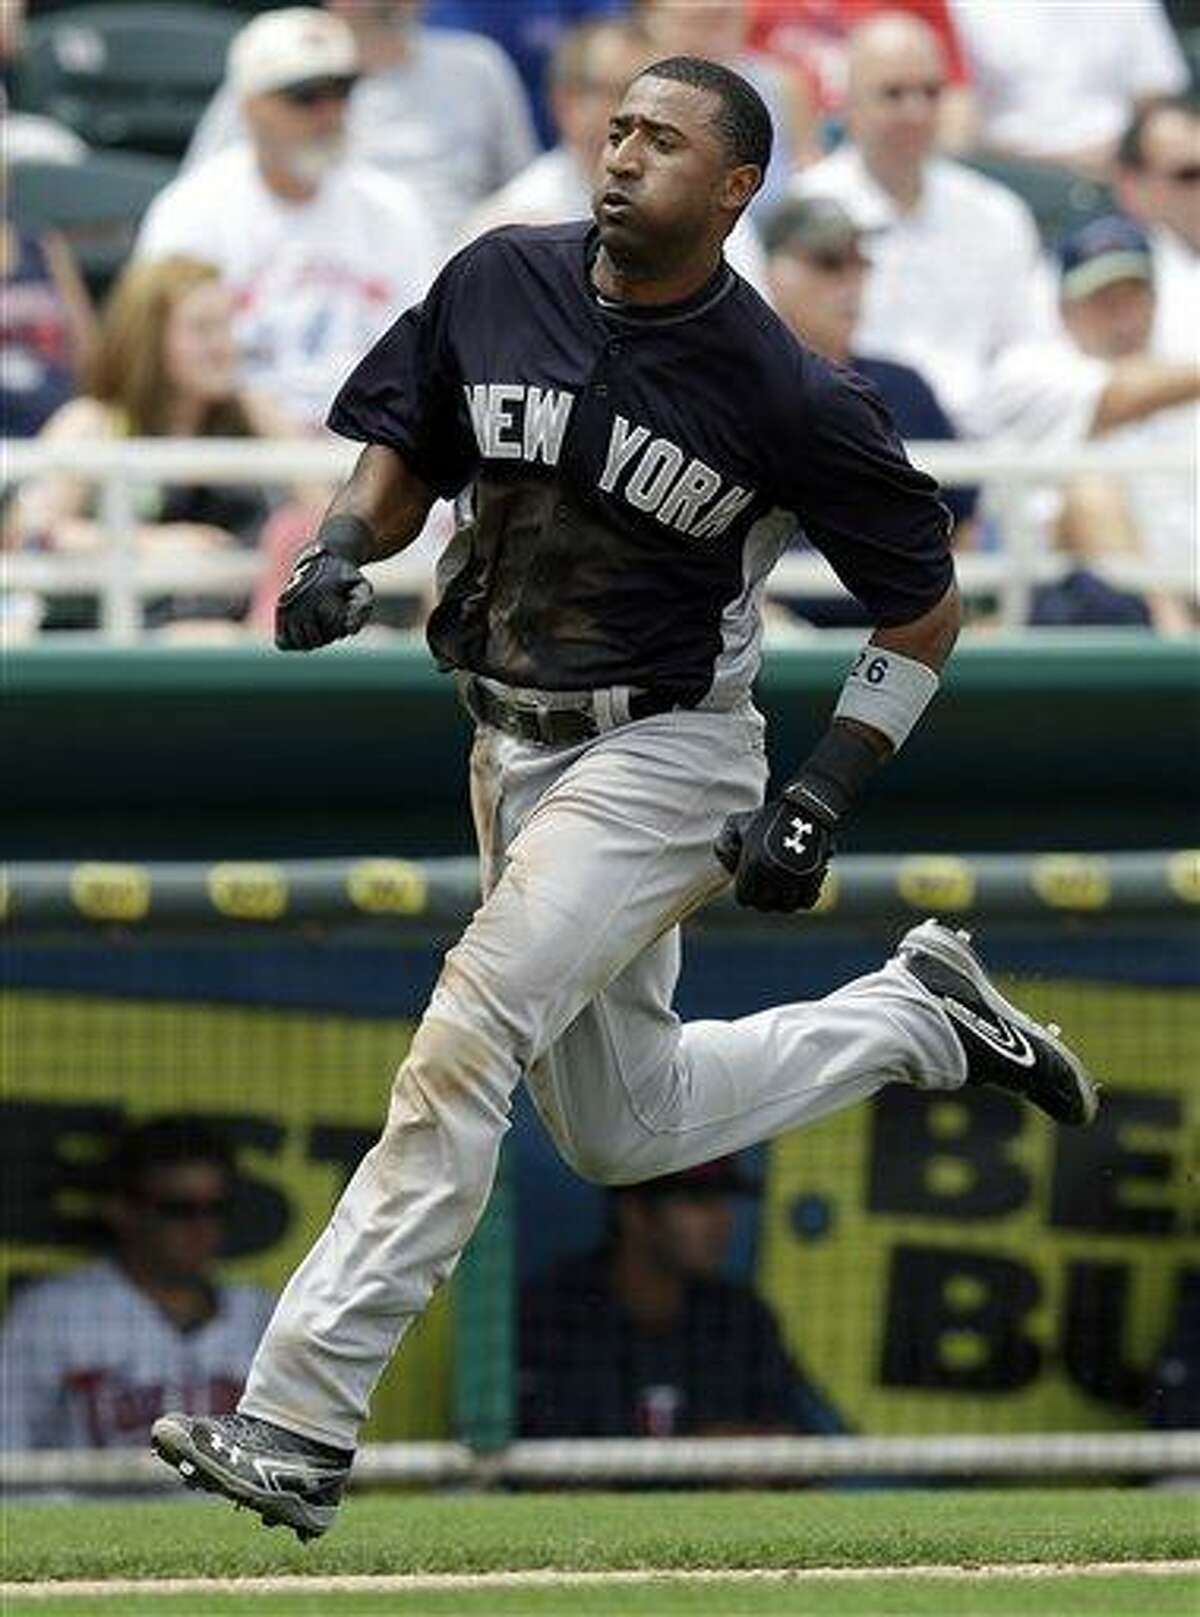 New York Yankees' Eduardo Nunez runs to home plate during an exhibition spring training baseball game against the Minnesota Twins in Fort Myers, Fla., Friday, March 22, 2013. (AP Photo/Elise Amendol12